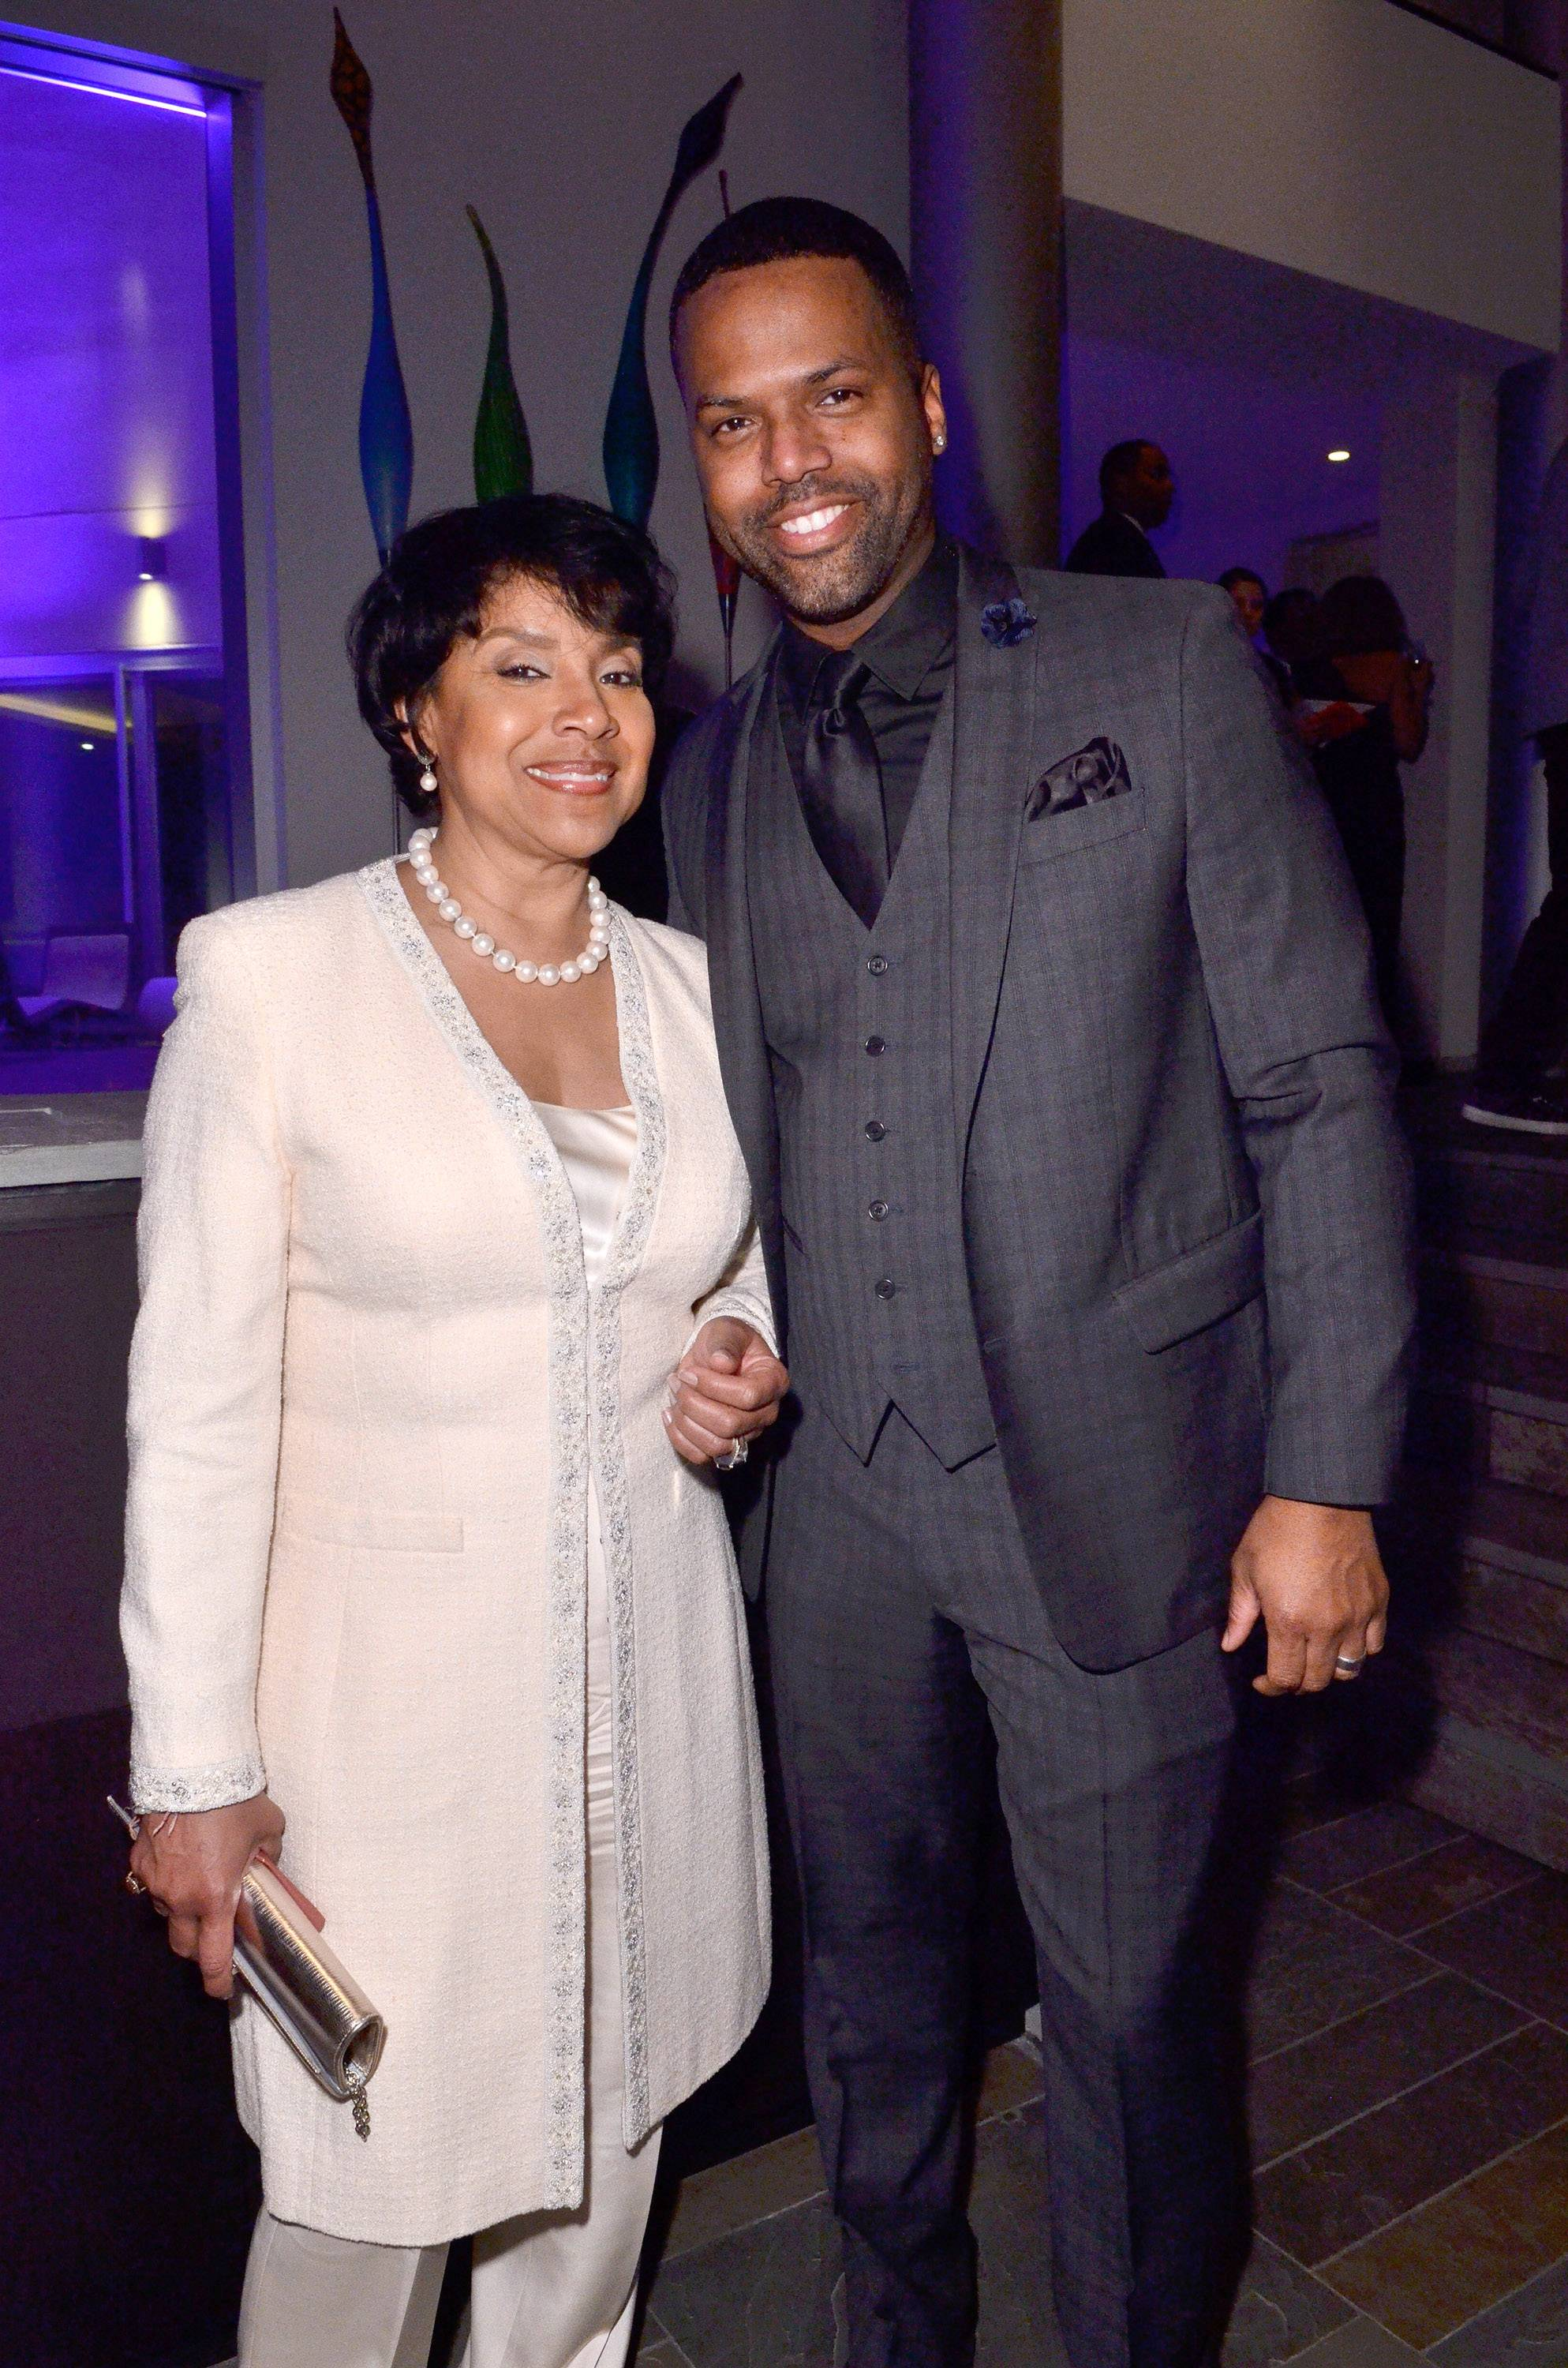 All Smiles - Phylicia Rashad and AJ Calloway are all smiles during The BET Honors weekend.(Photo: Kris Connor/BET/Getty Images for BET)